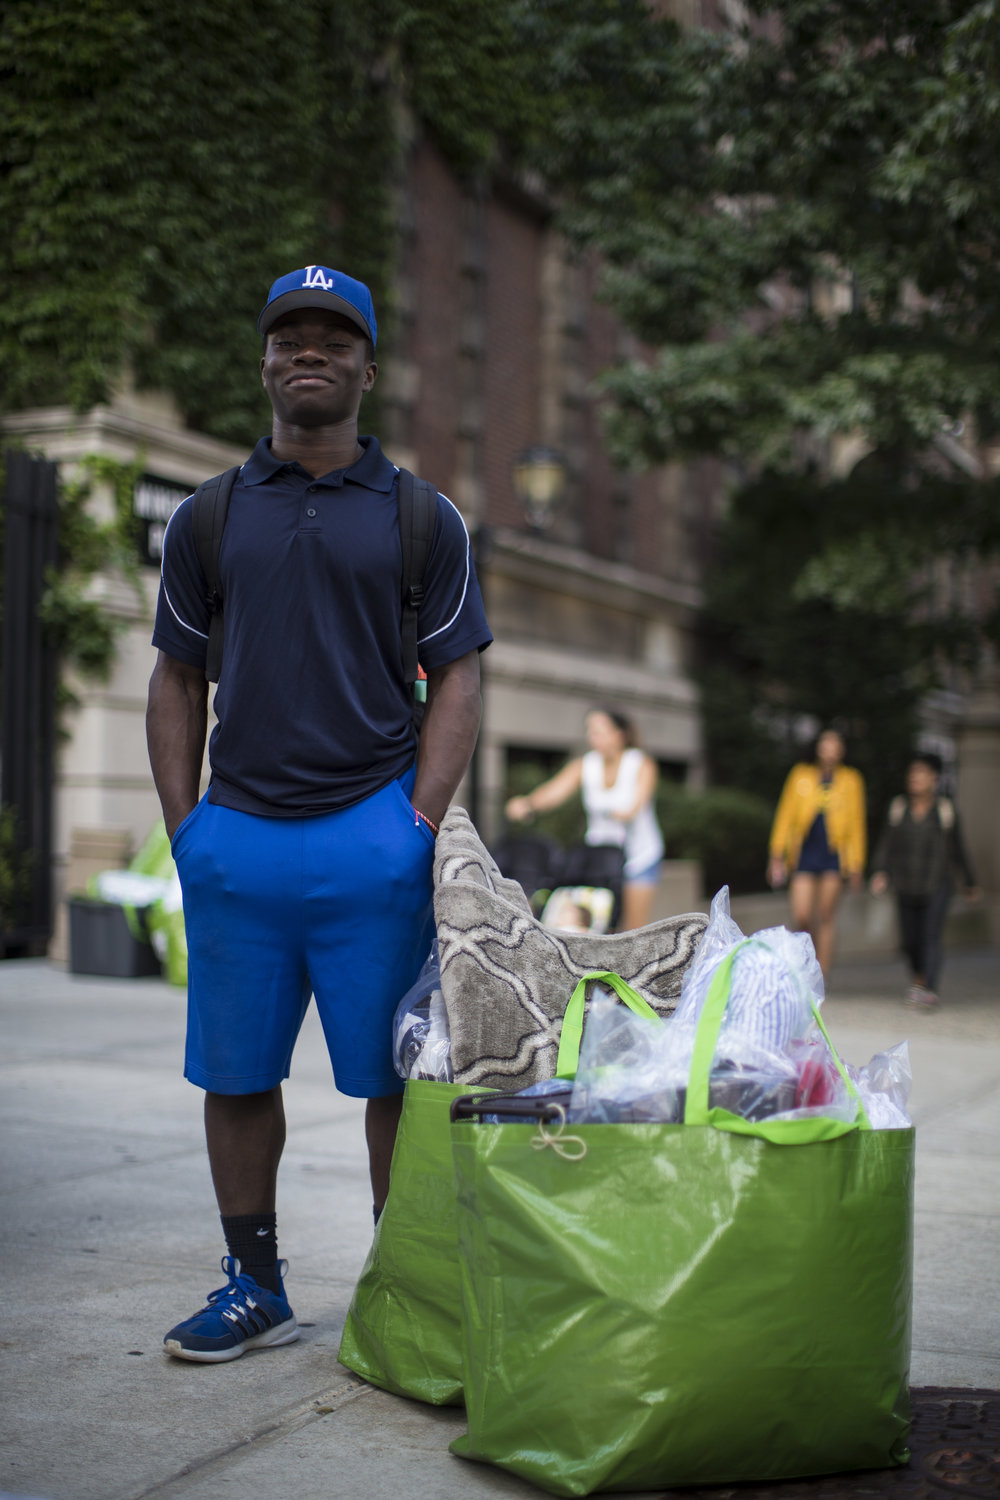 What we Are - Grad Bag is a green initiative to reuse college dorm supplies.We collect and redistribute lightly-used dorm room items that too often end up in landfills and give them to incoming college freshmen from low-income households.